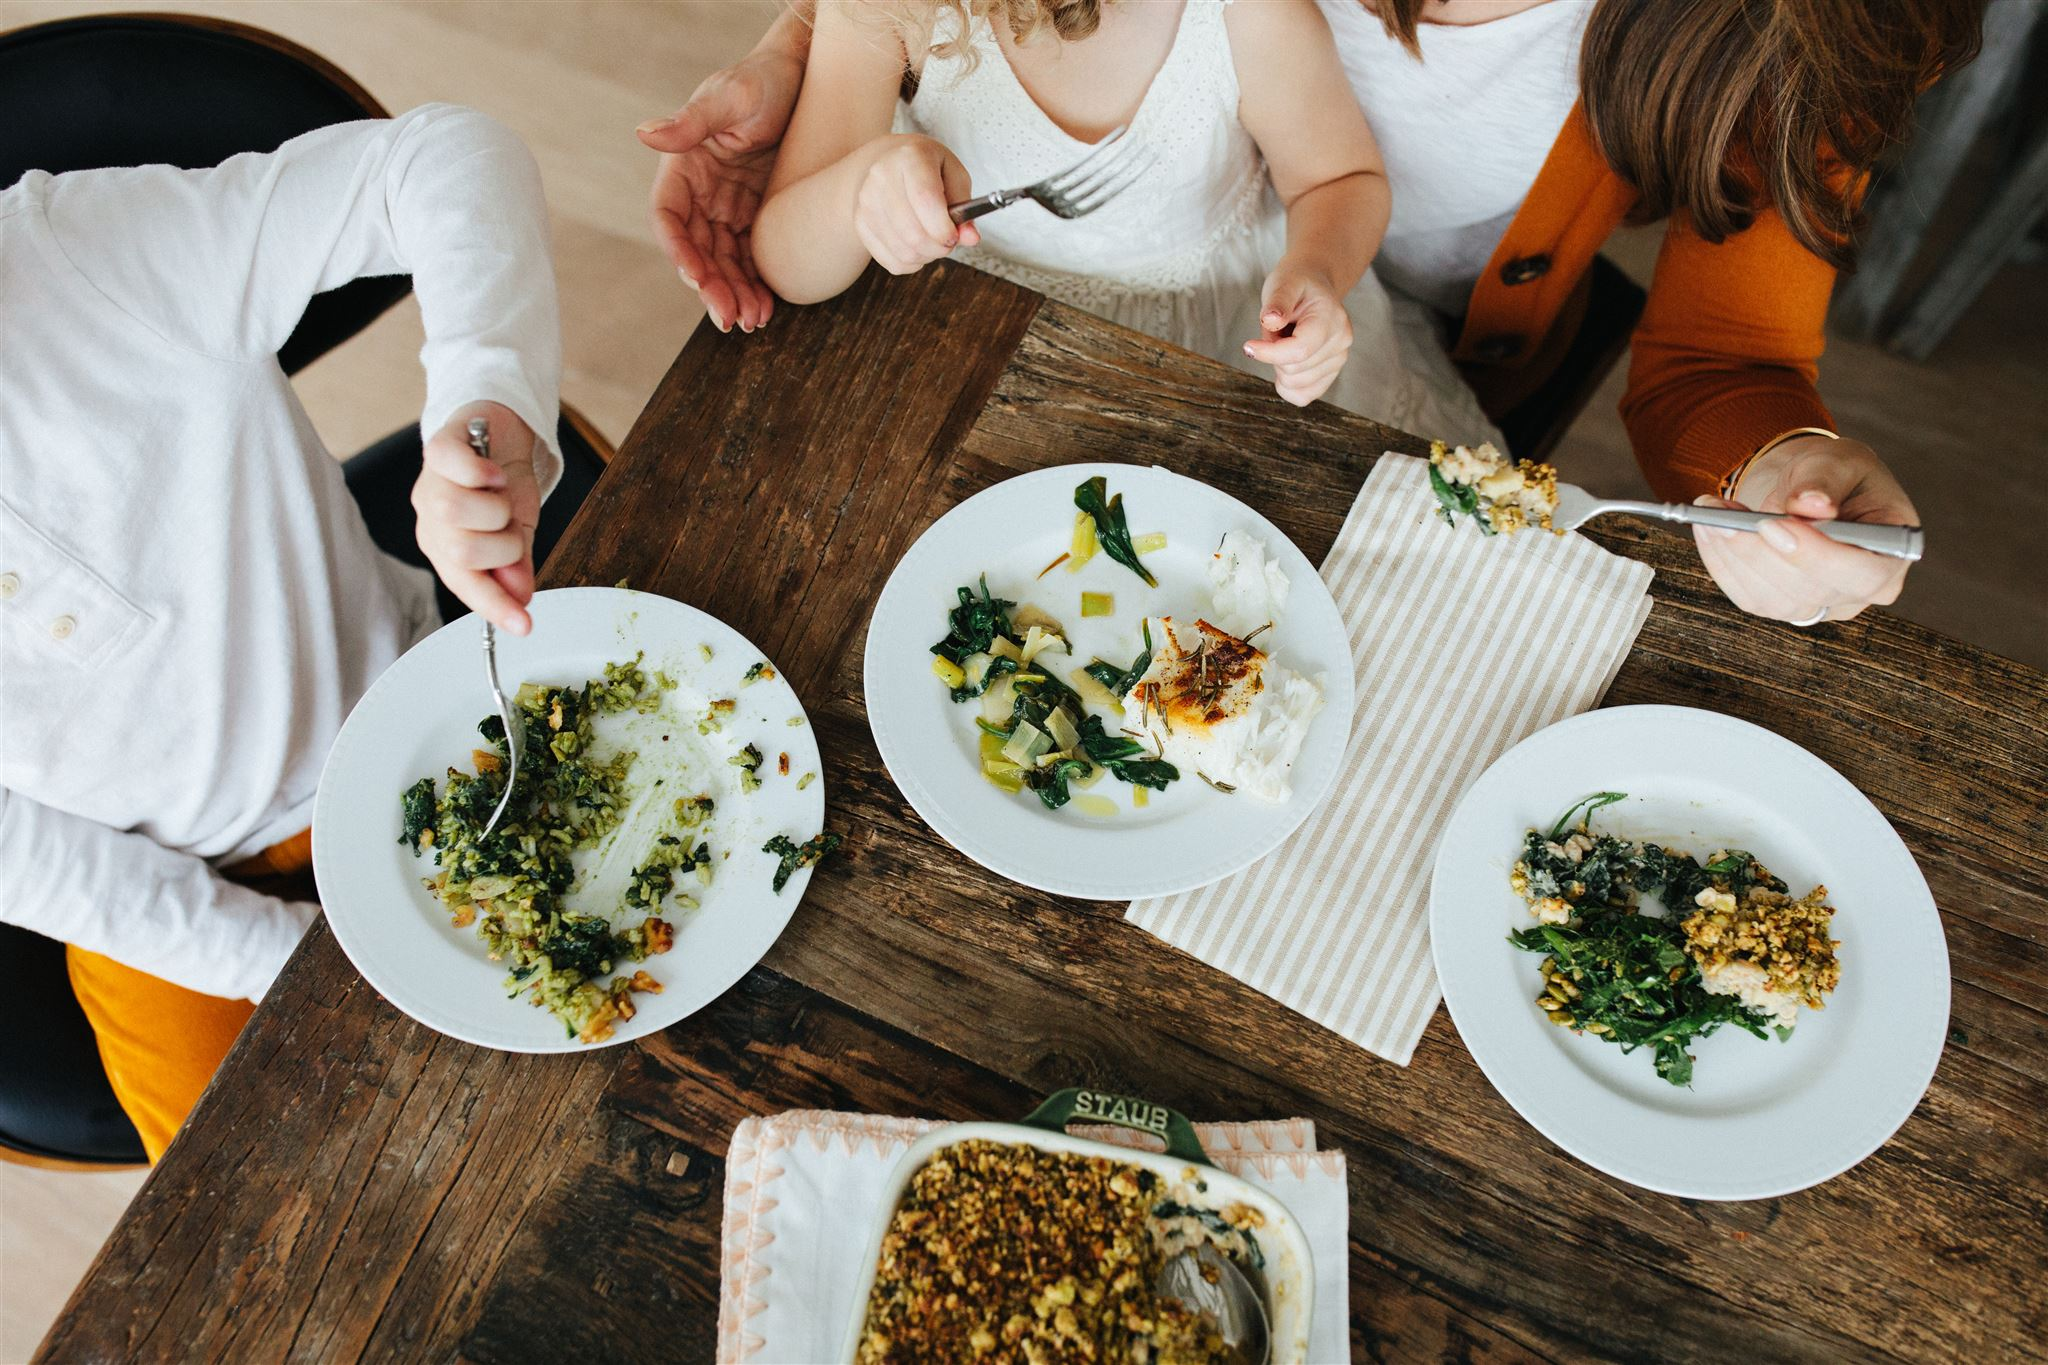 A mother and her two young children enjoying a balanced meal prepared by a Culinista private chef.